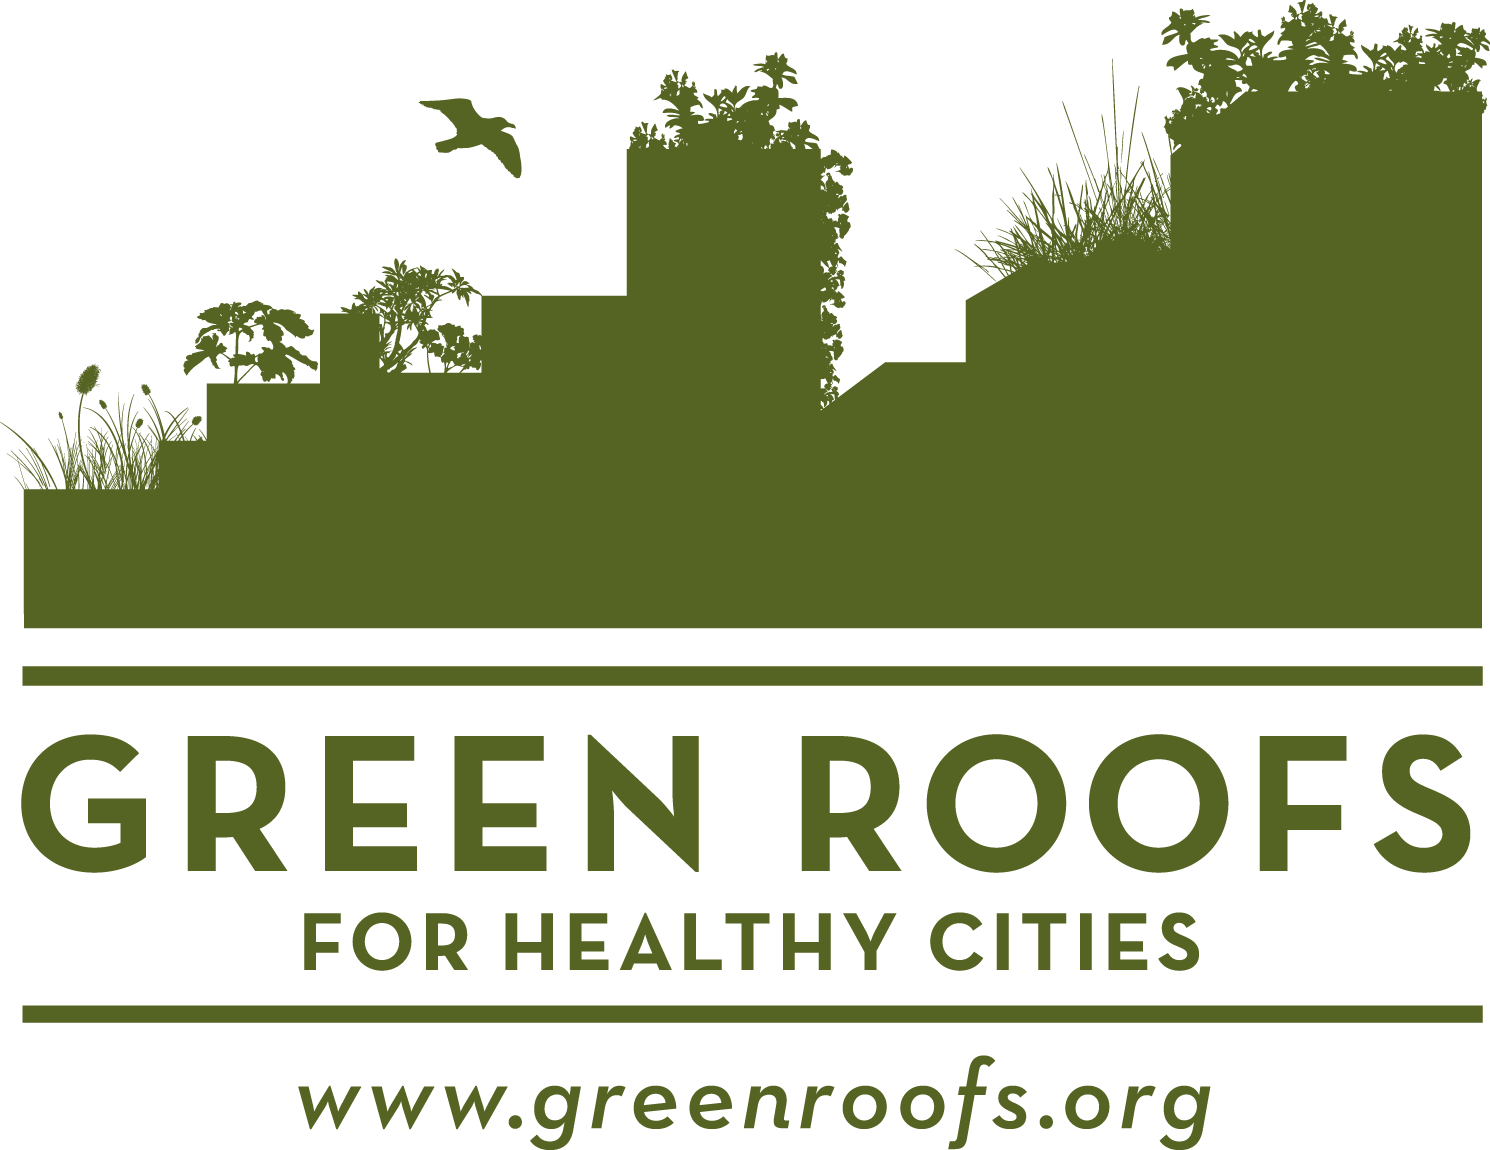 About Green Roofs — Green Roofs for Healthy Cities